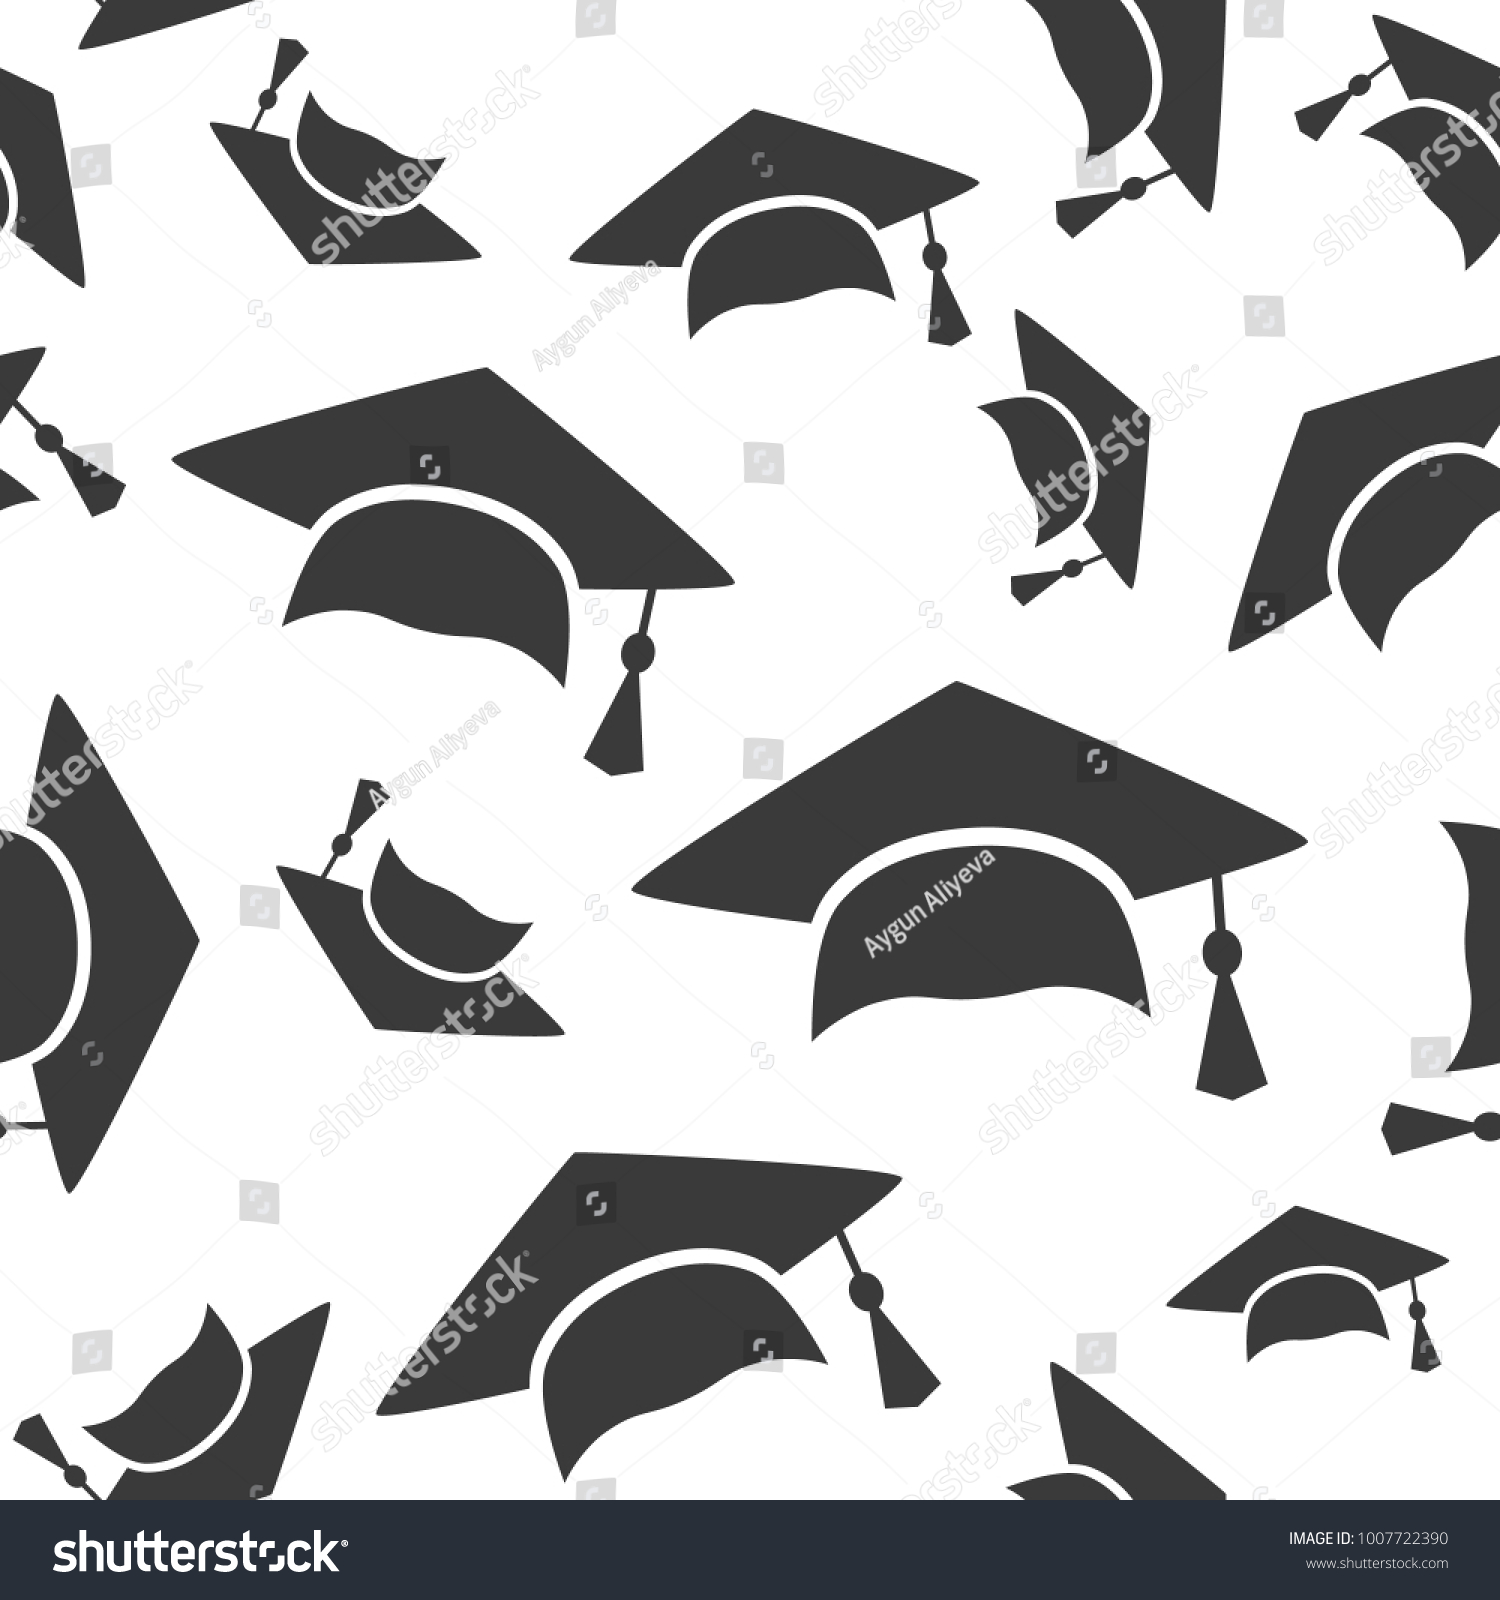 Graduation Cap Seamless Pattern Background Icon Stock Vector (2018 ...